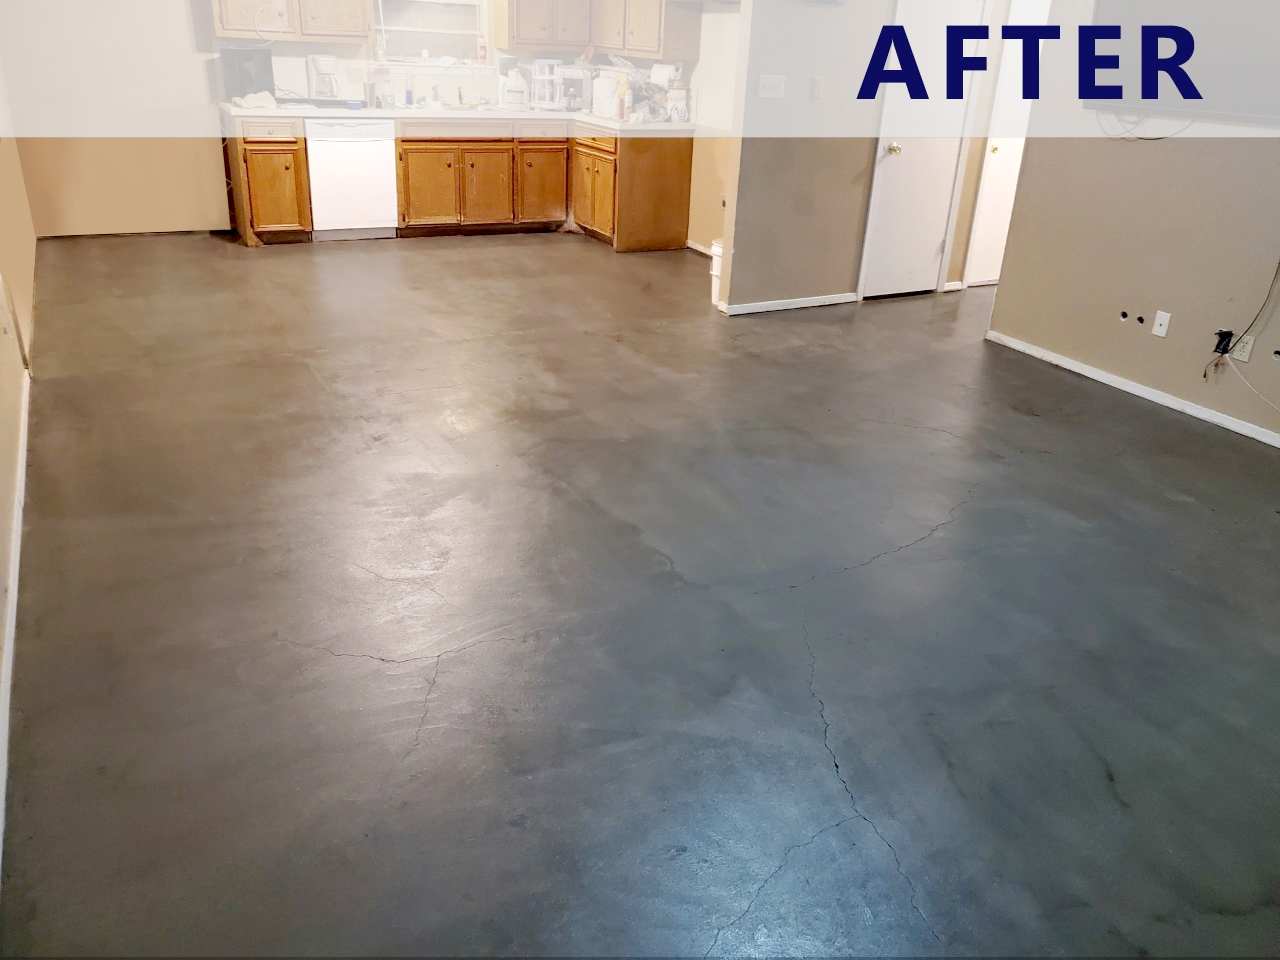 After picture of project.